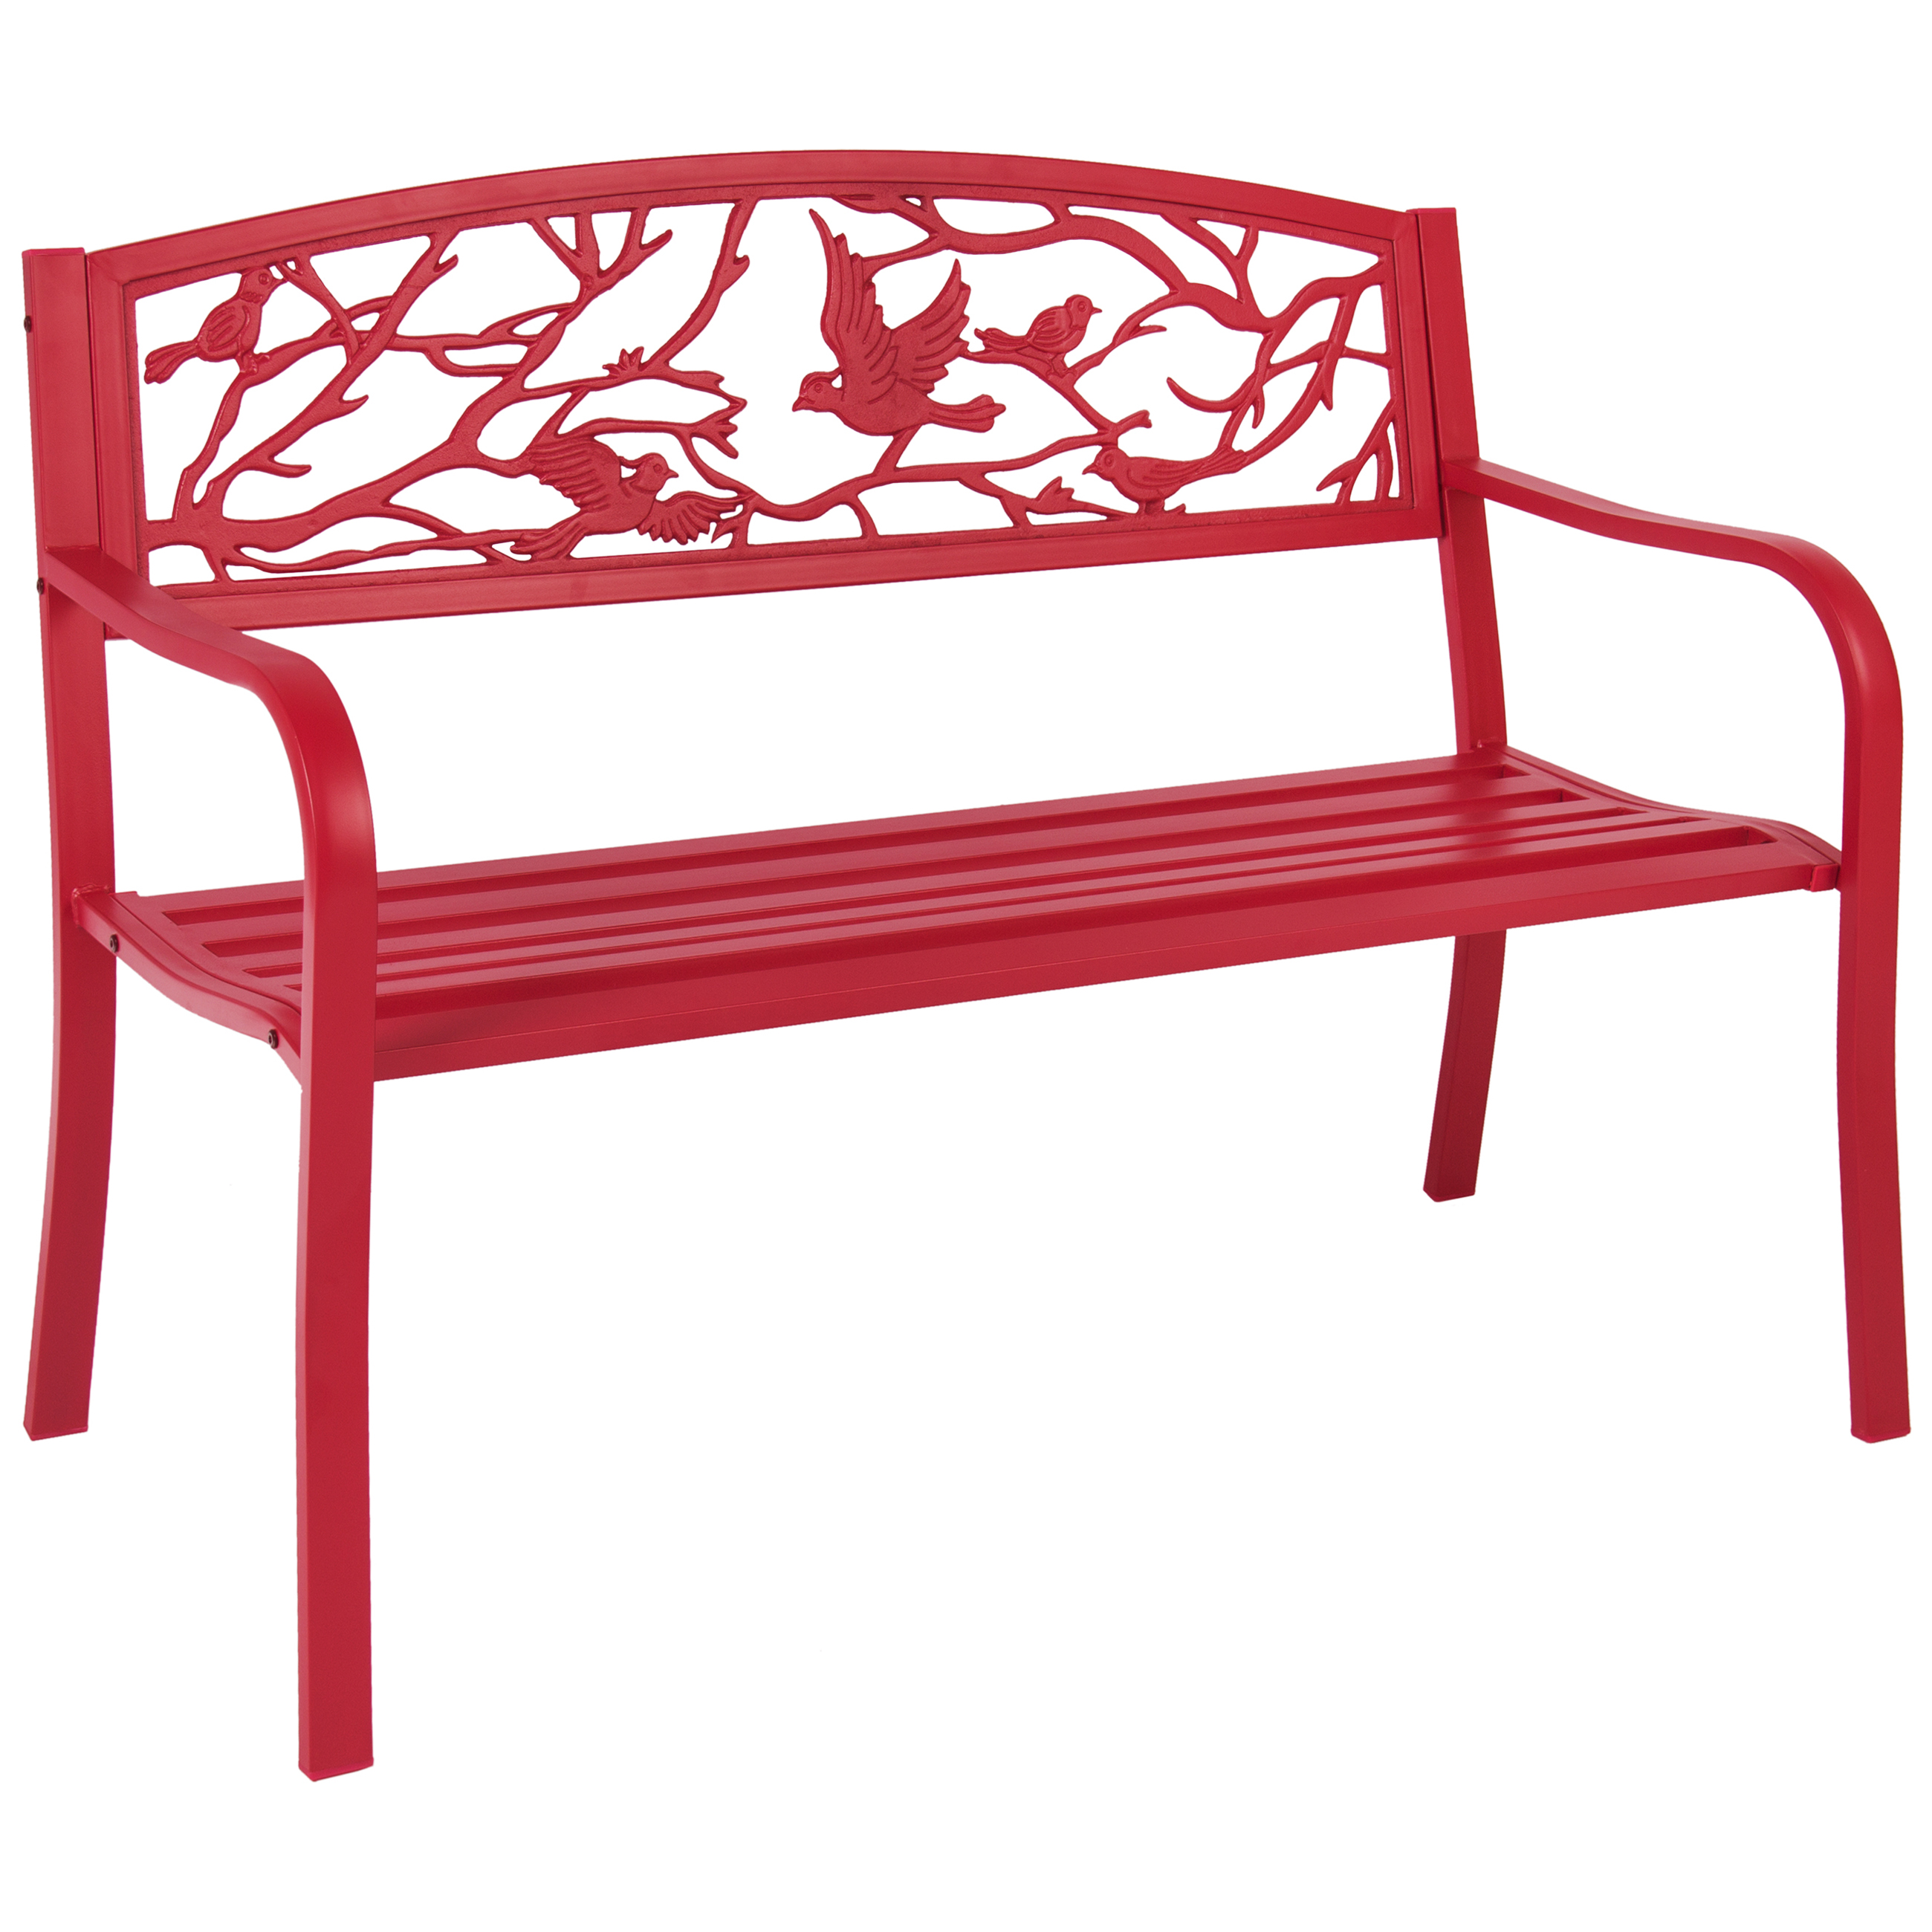 outdoor benches rose red steel patio garden park bench outdoor living patio furniture ZYSAFEA